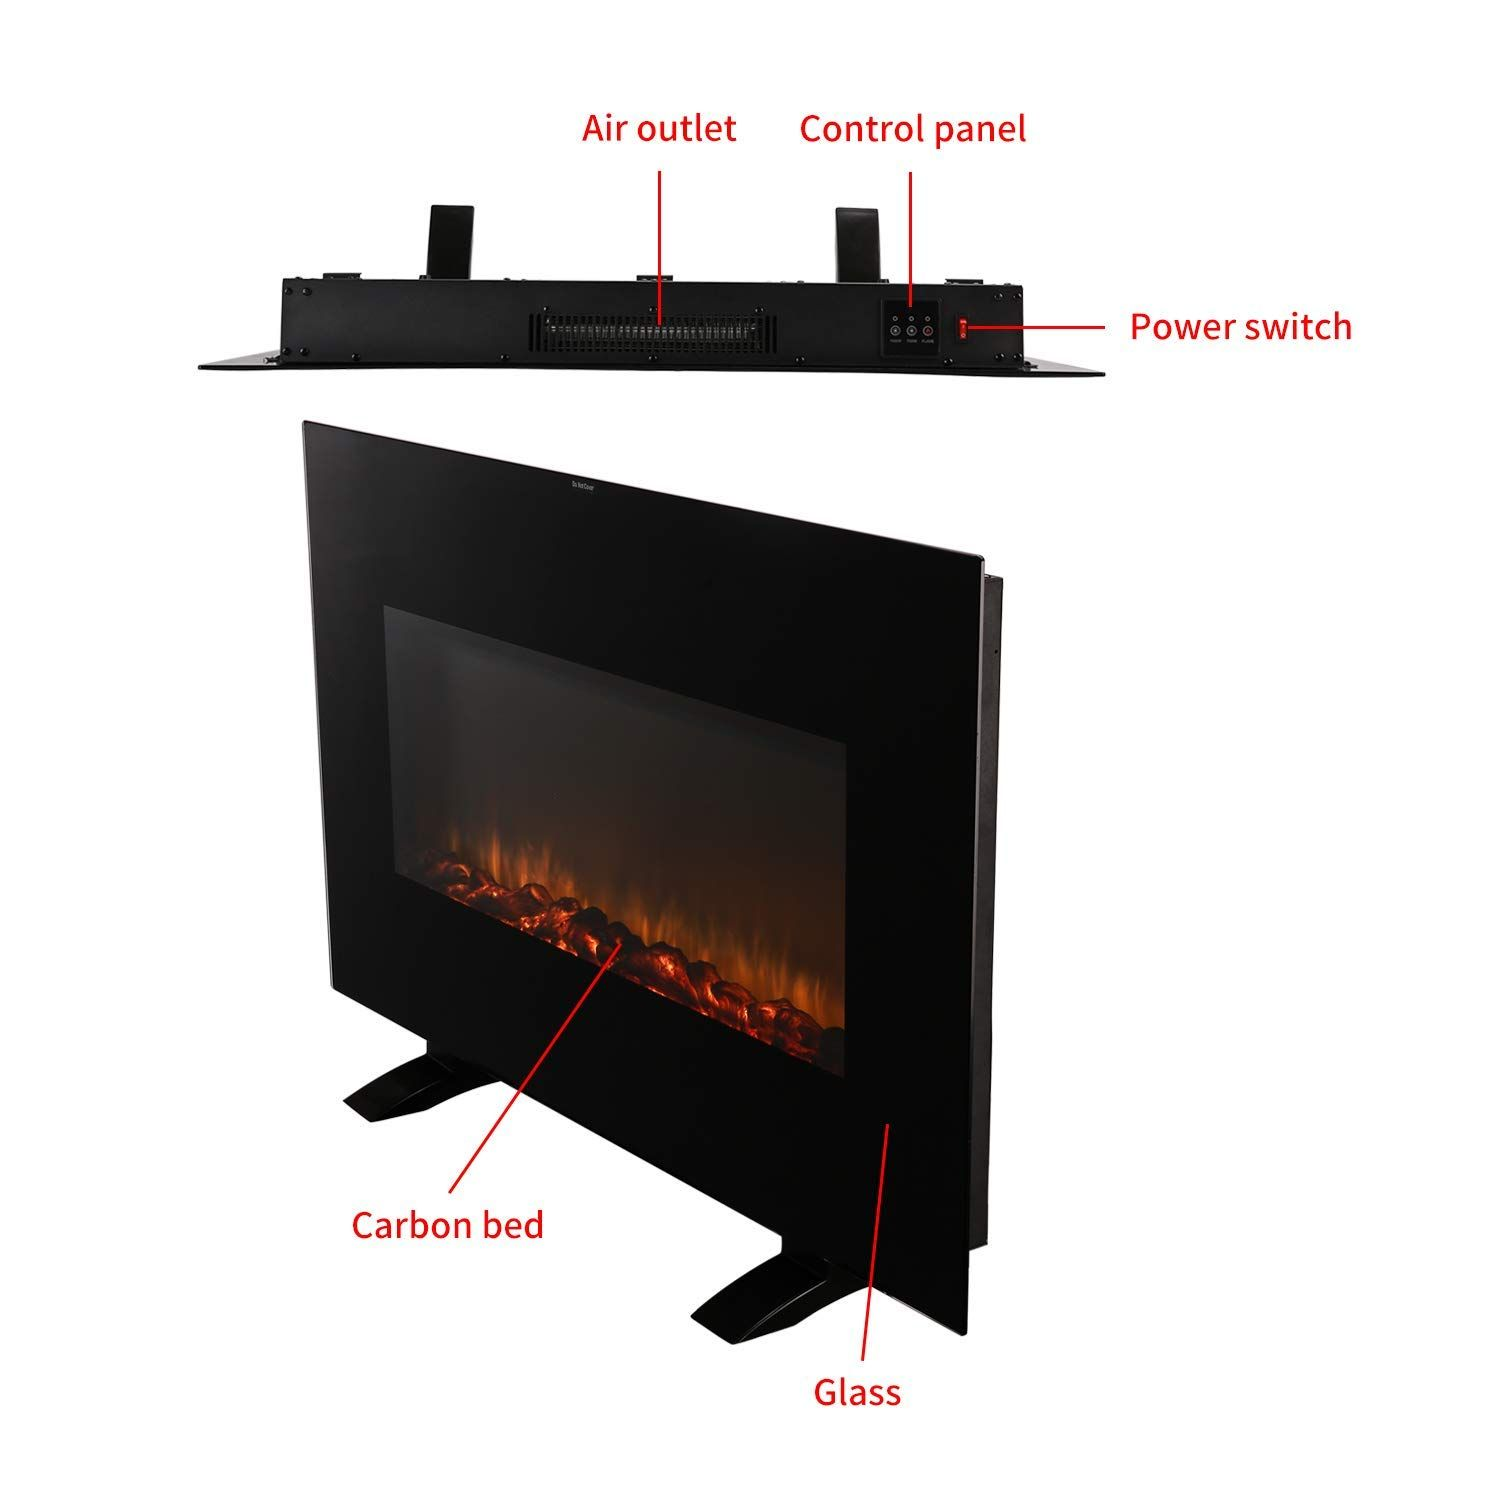 Amazon Com Koolwoom Electrical Fireplace Stove With Heater 38 X3 7 X22 4 Wall Mounted Black Portable Electric Fireplace Stove Fireplace Electric Fireplace